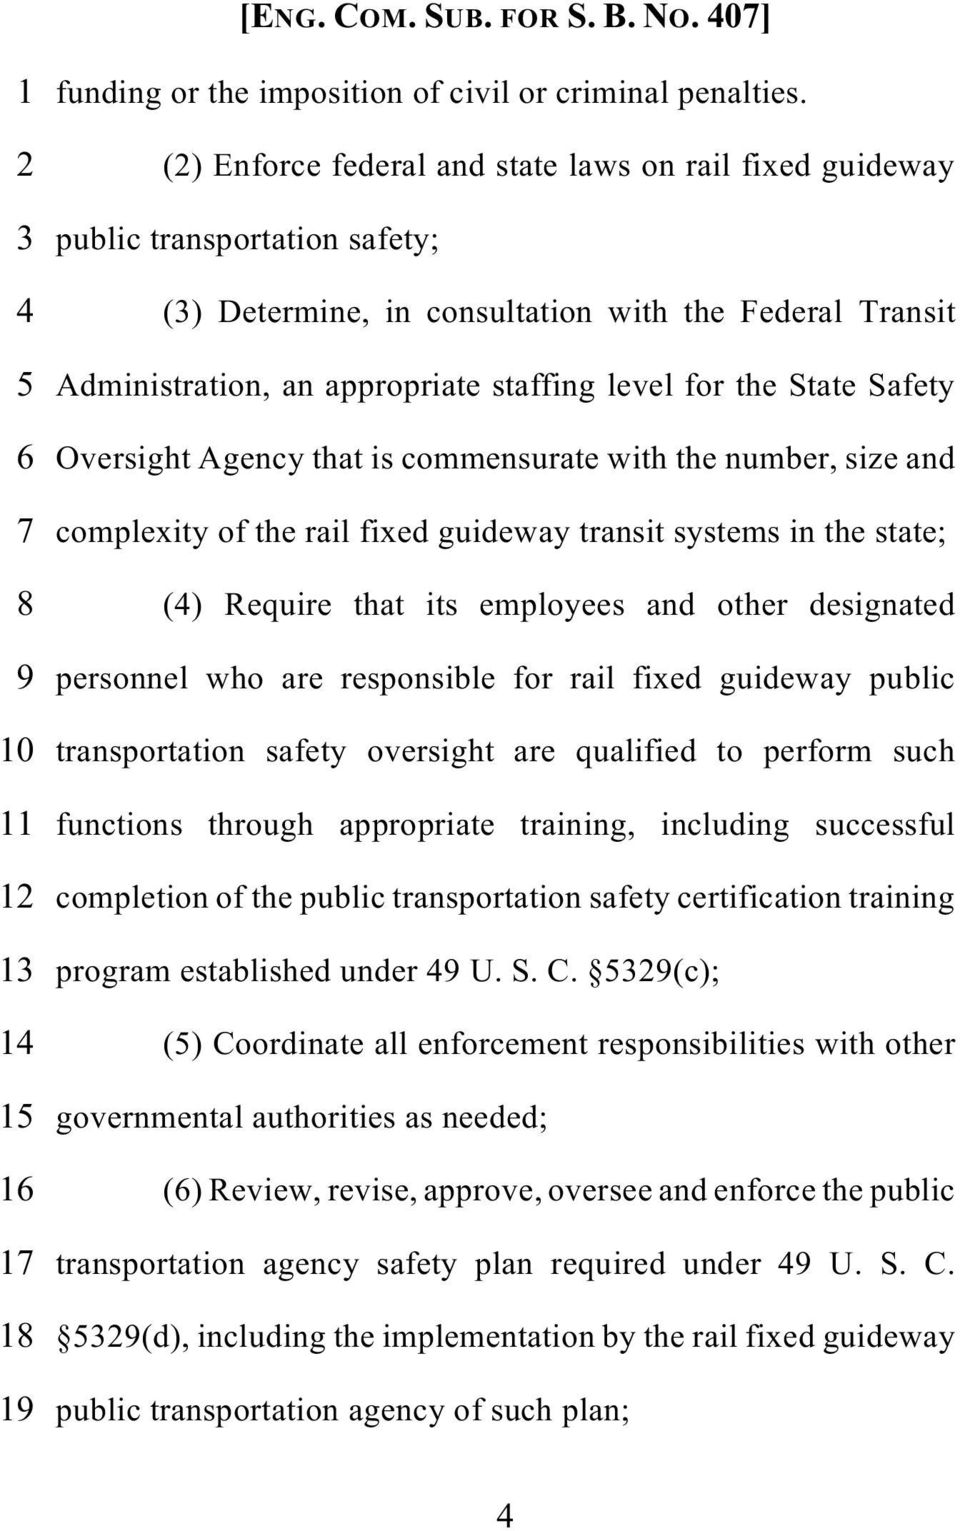 for the State Safety 6 Oversight Agency that is commensurate with the number, size and 7 complexity of the rail fixed guideway transit systems in the state; 8 (4) Require that its employees and other